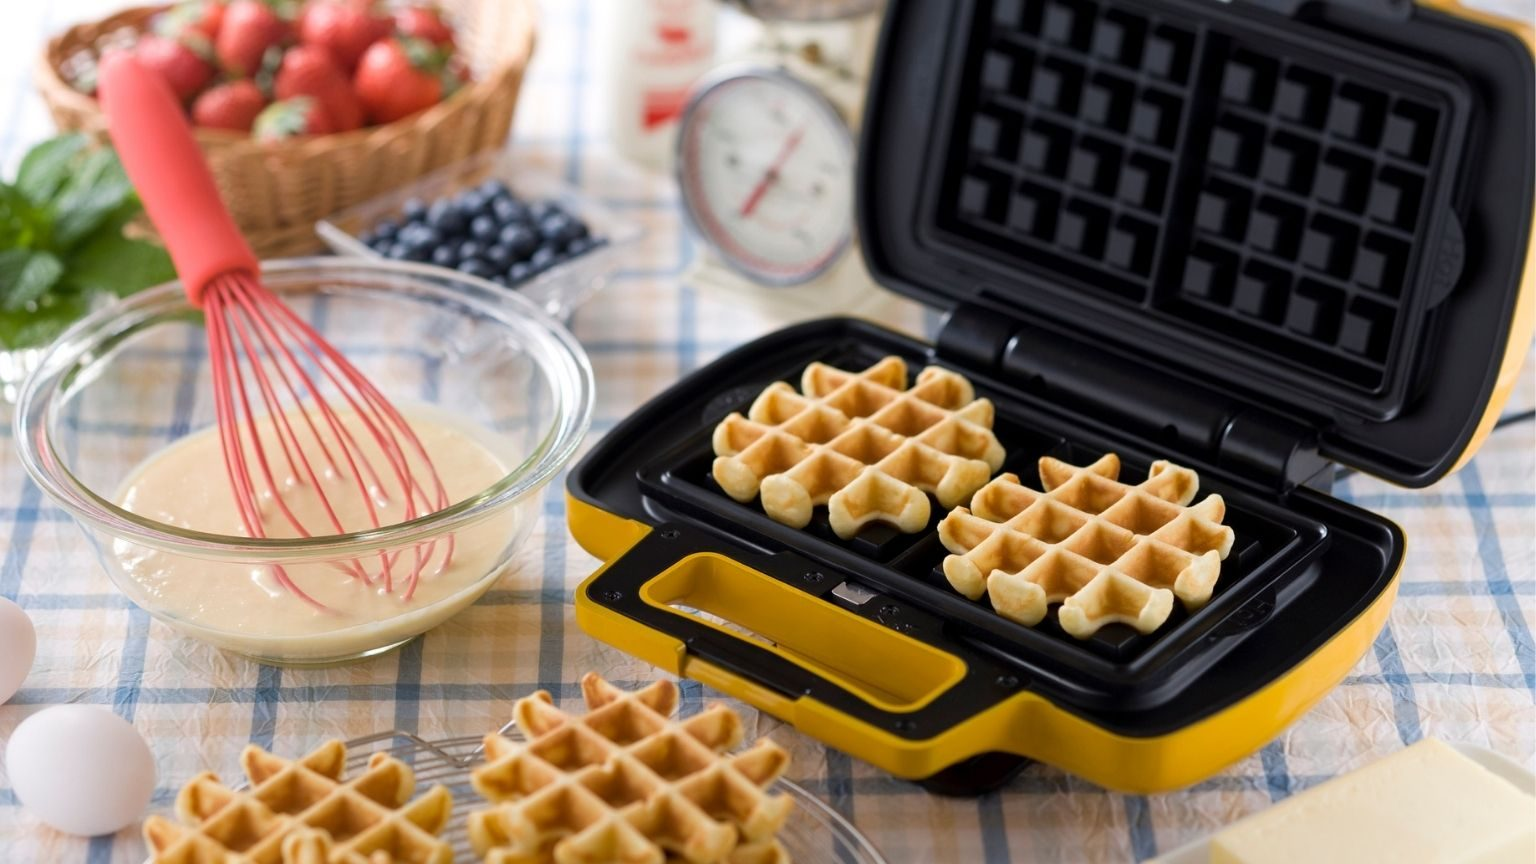 Waffle and Ingredients